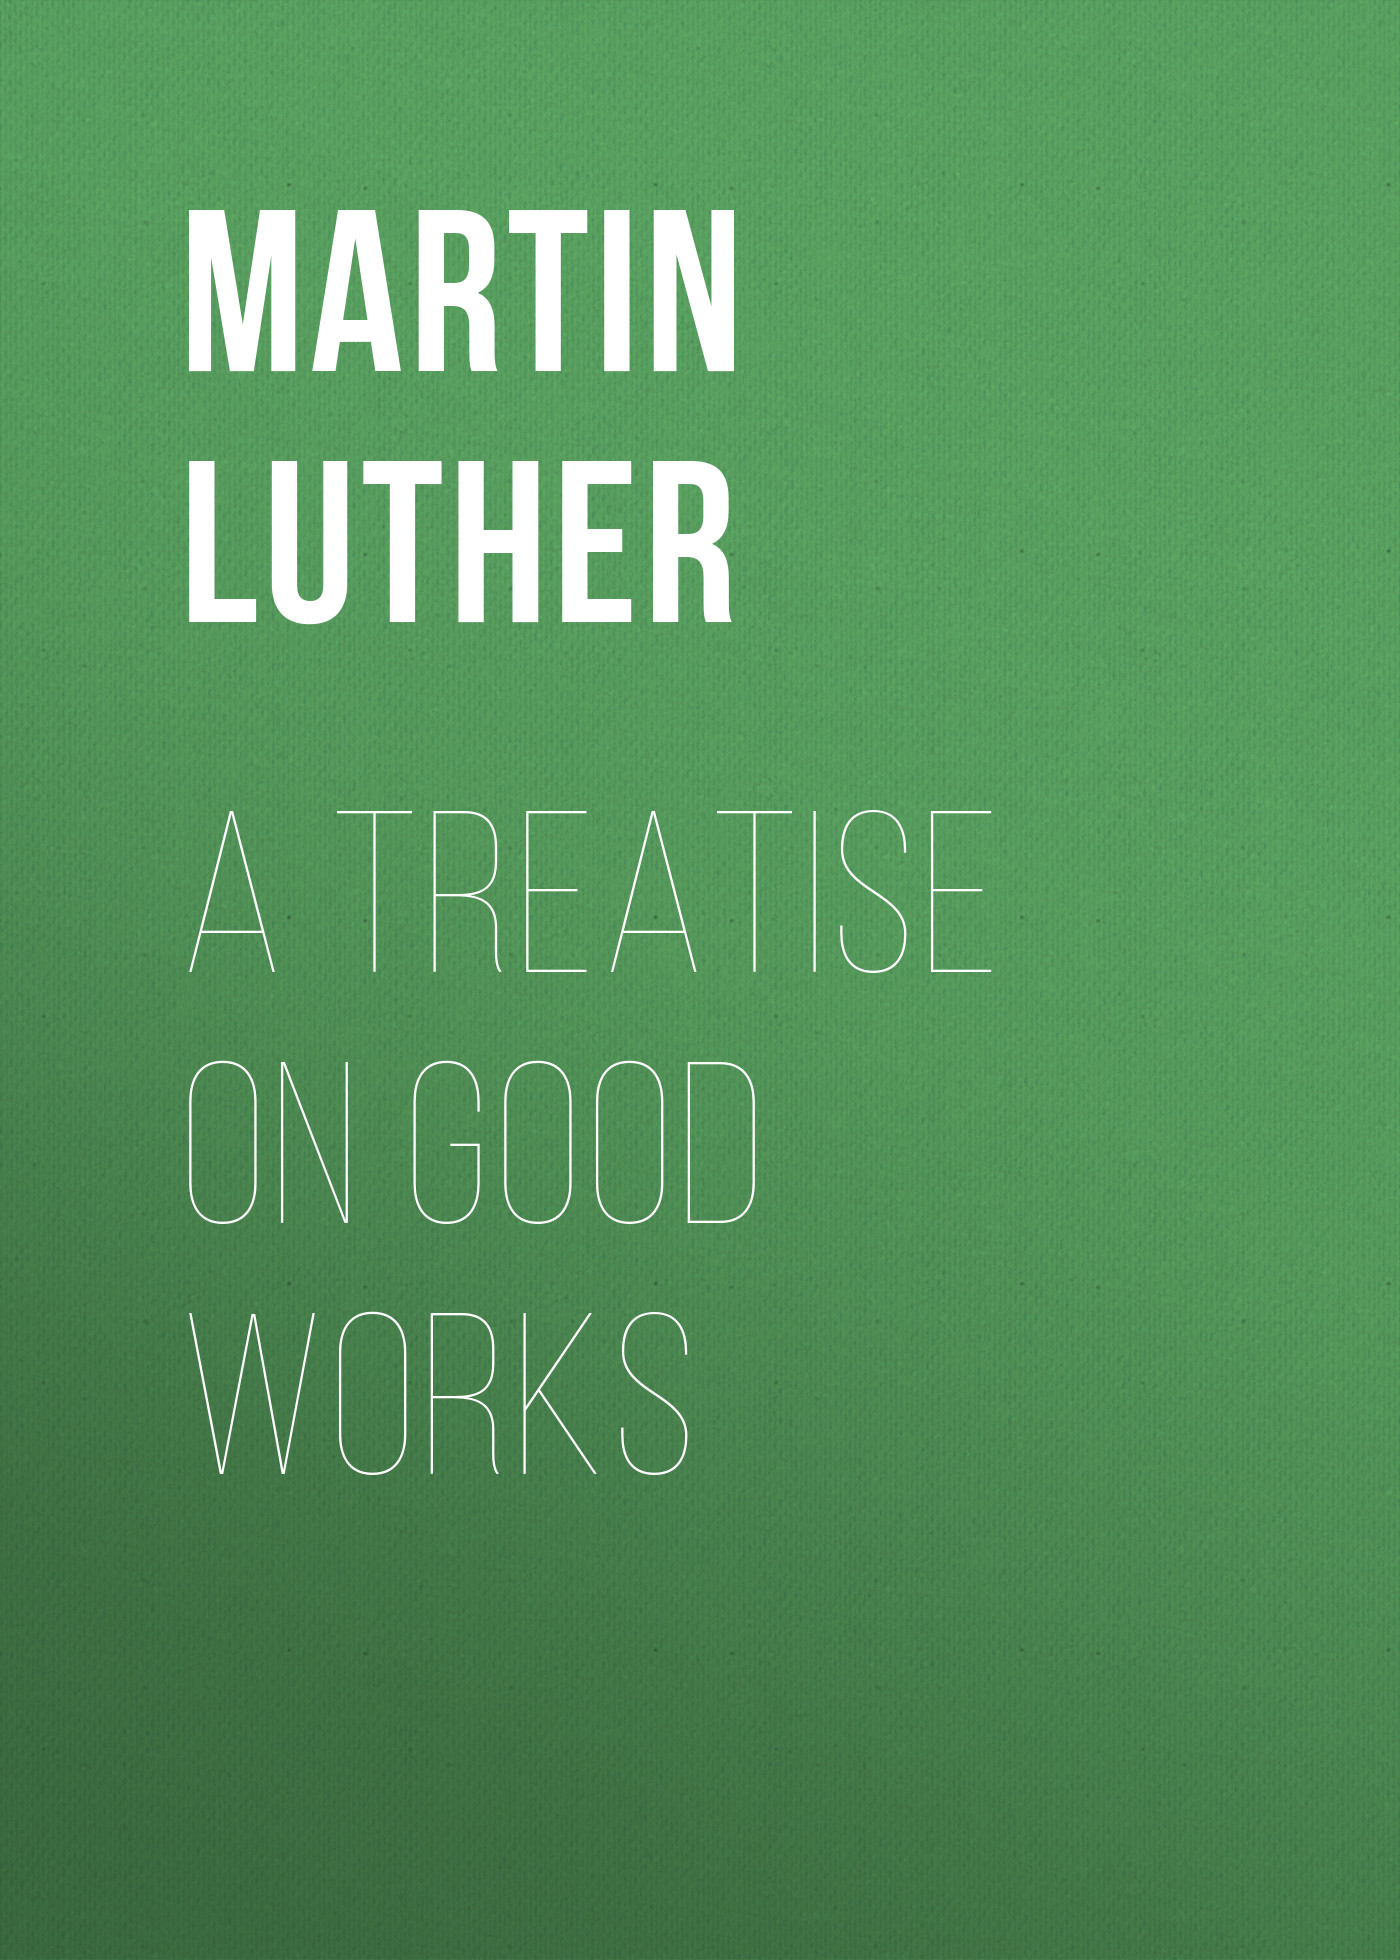 Martin Luther A Treatise on Good Works andrew gray a treatise on spinning machinery